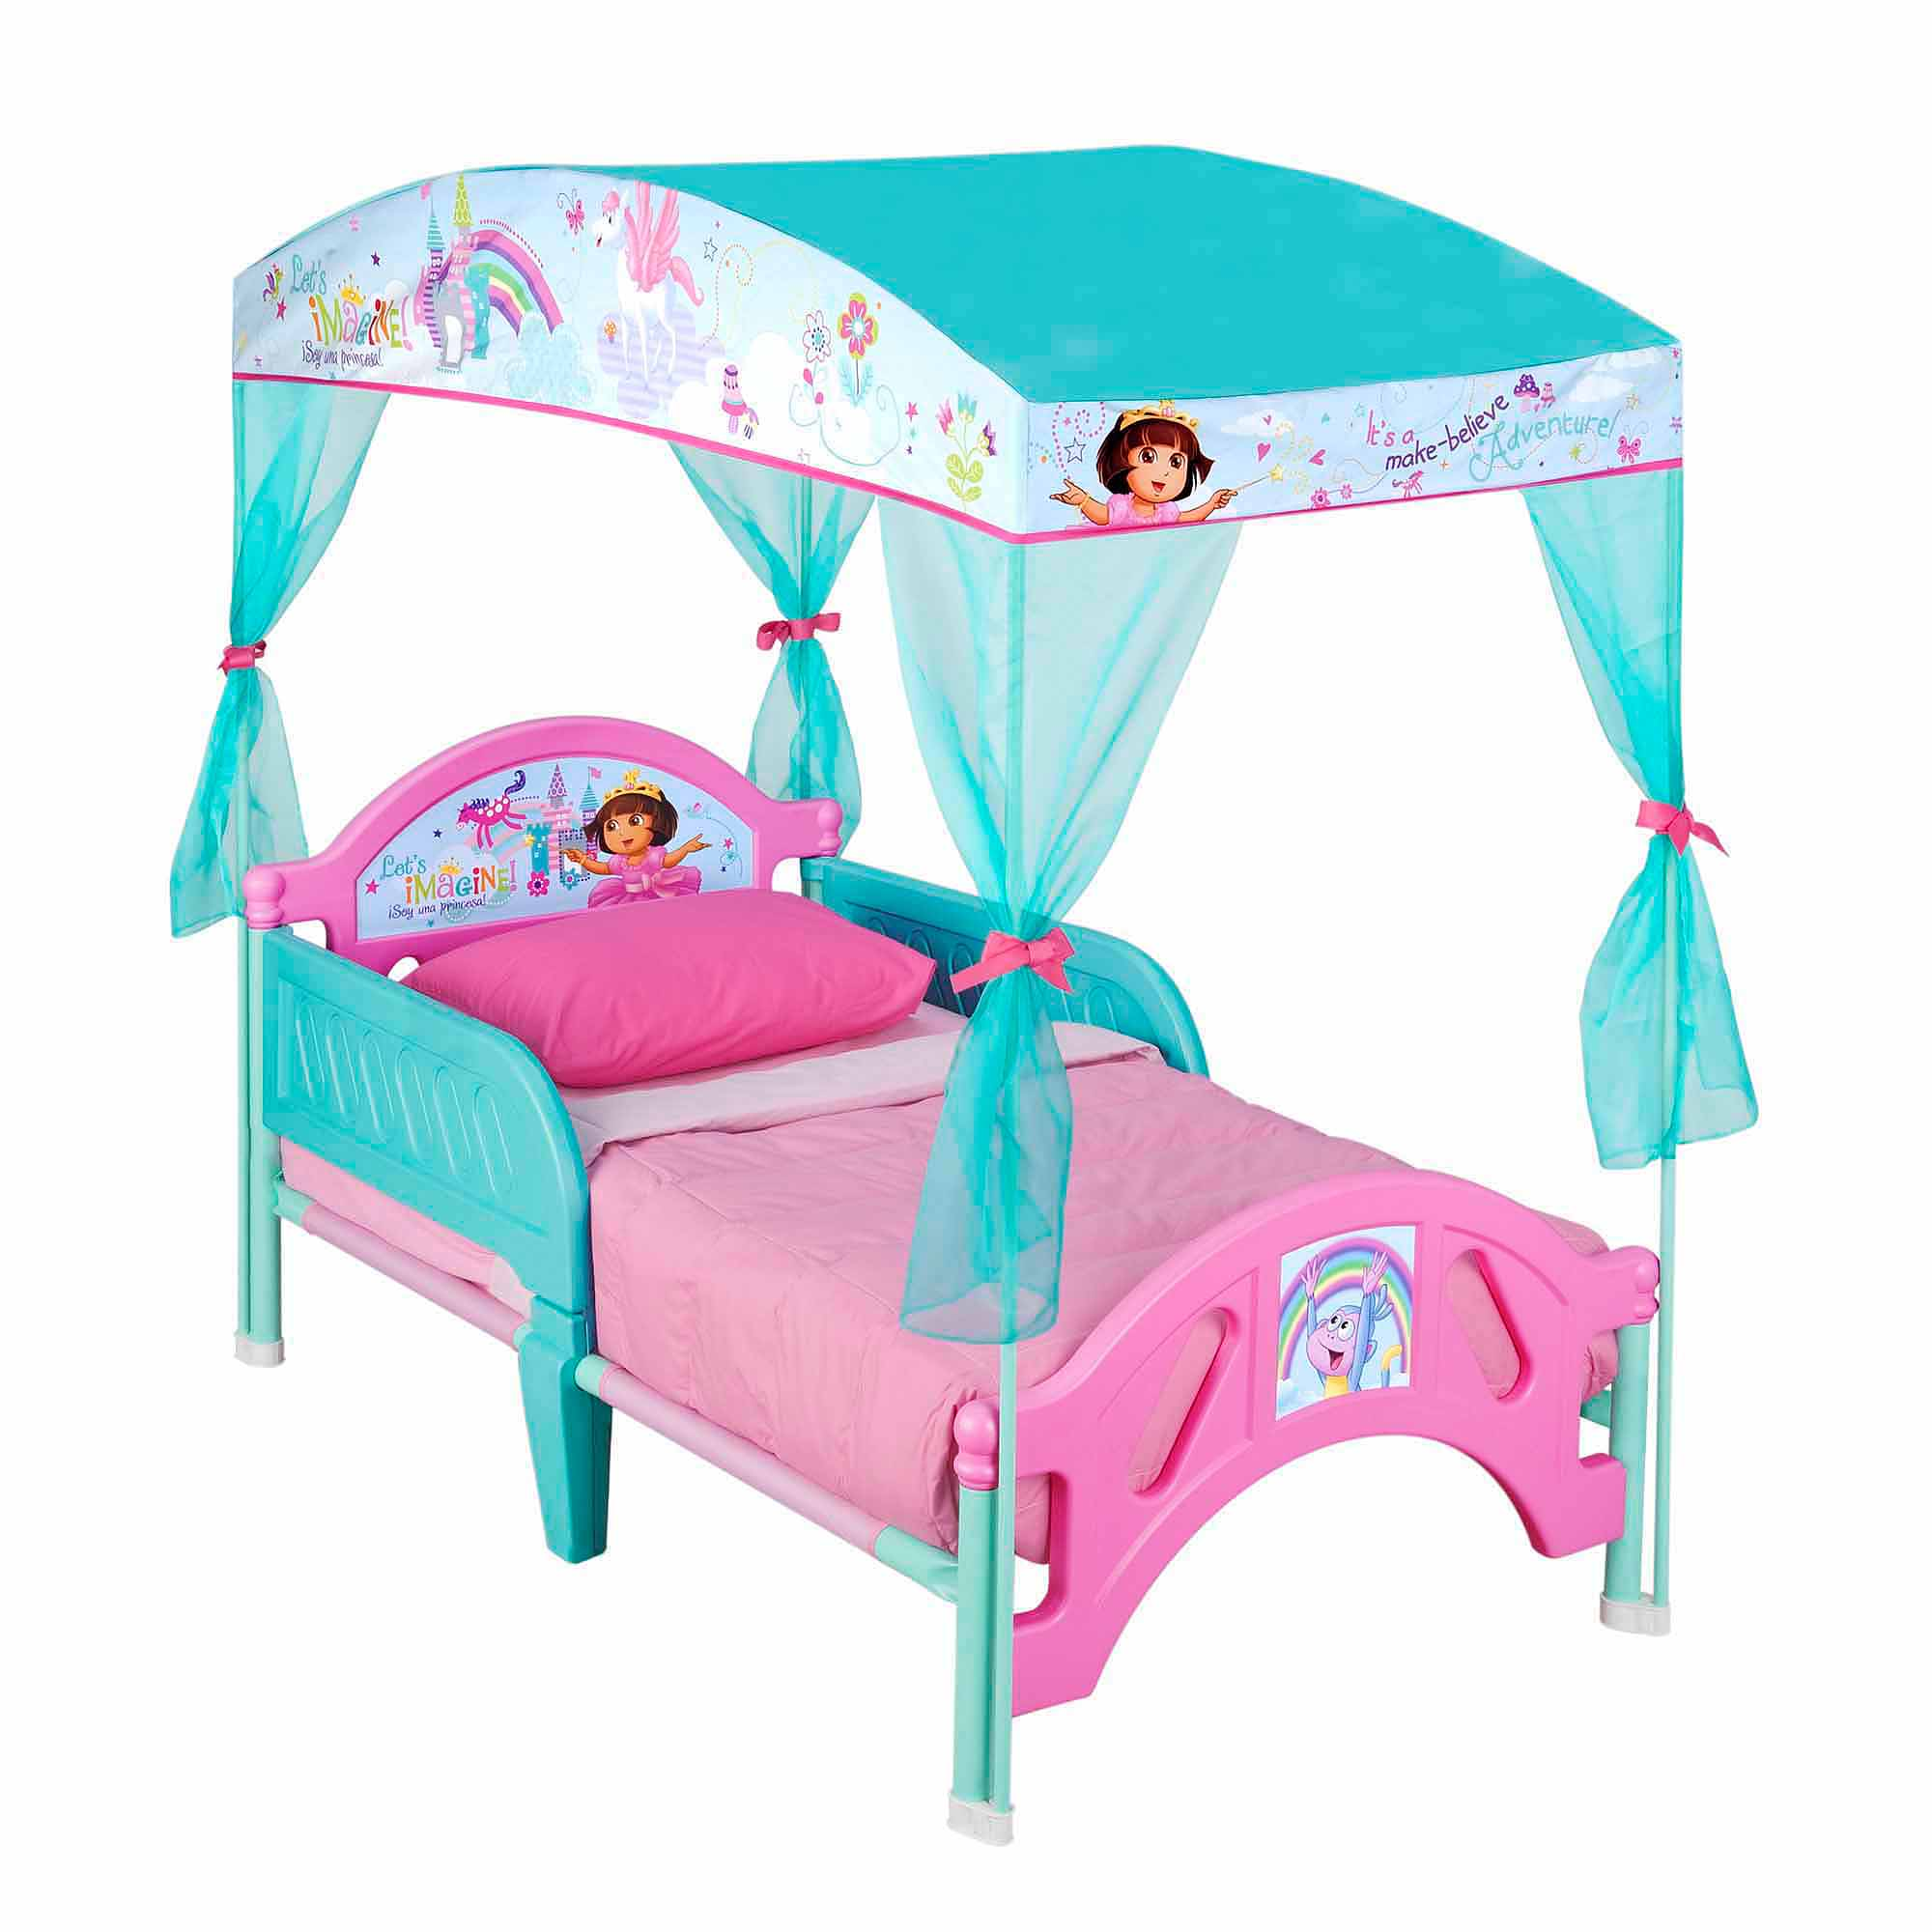 Dora the Explorer Plastic Toddler Bed with Canopy